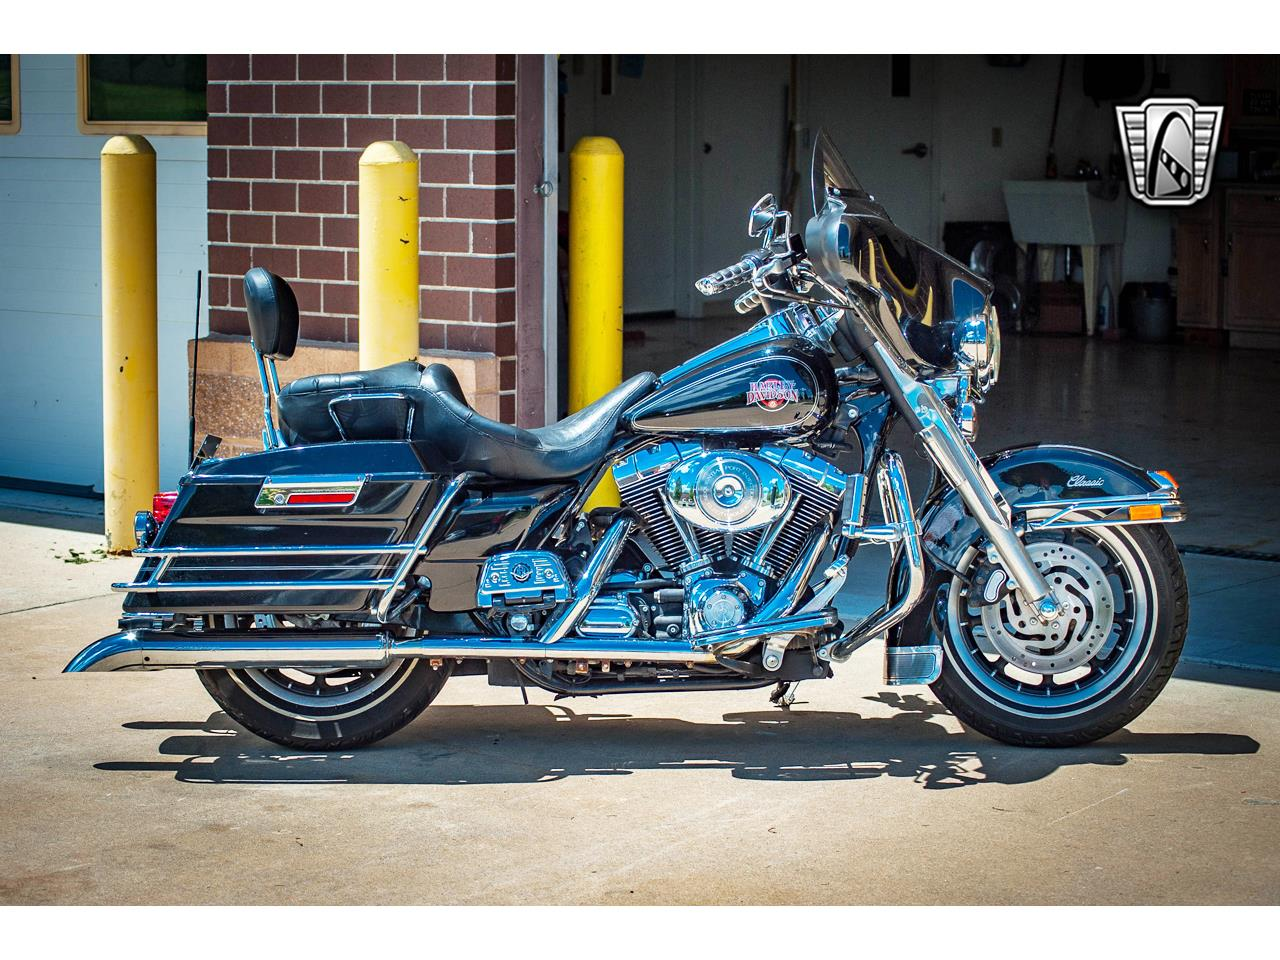 Large Picture of '04 Motorcycle - $12,000.00 - QD6F